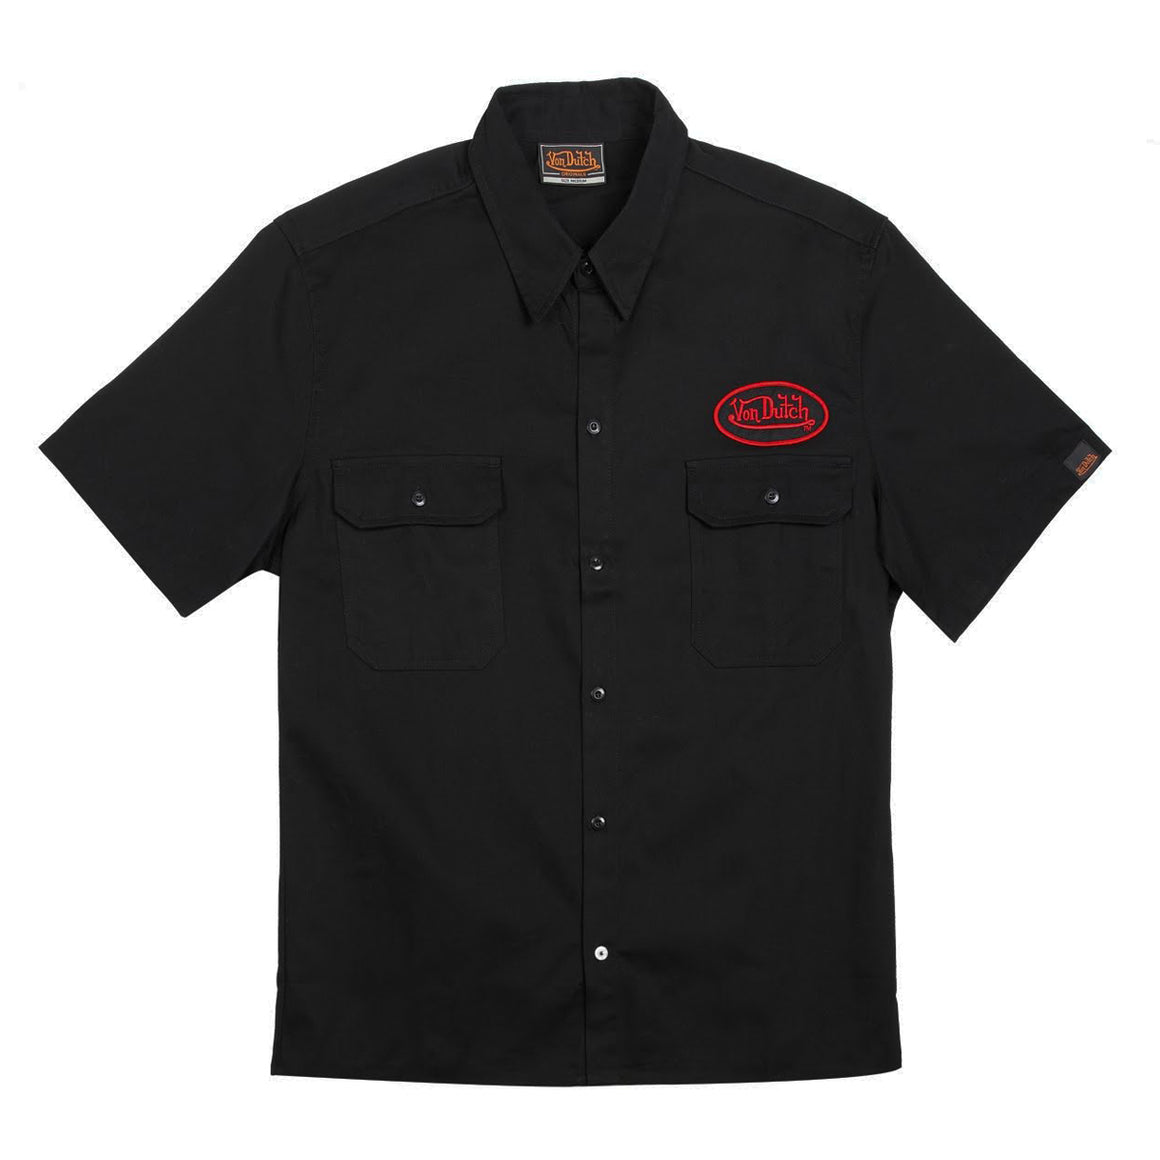 Von Dutch Black Mechanic Tee